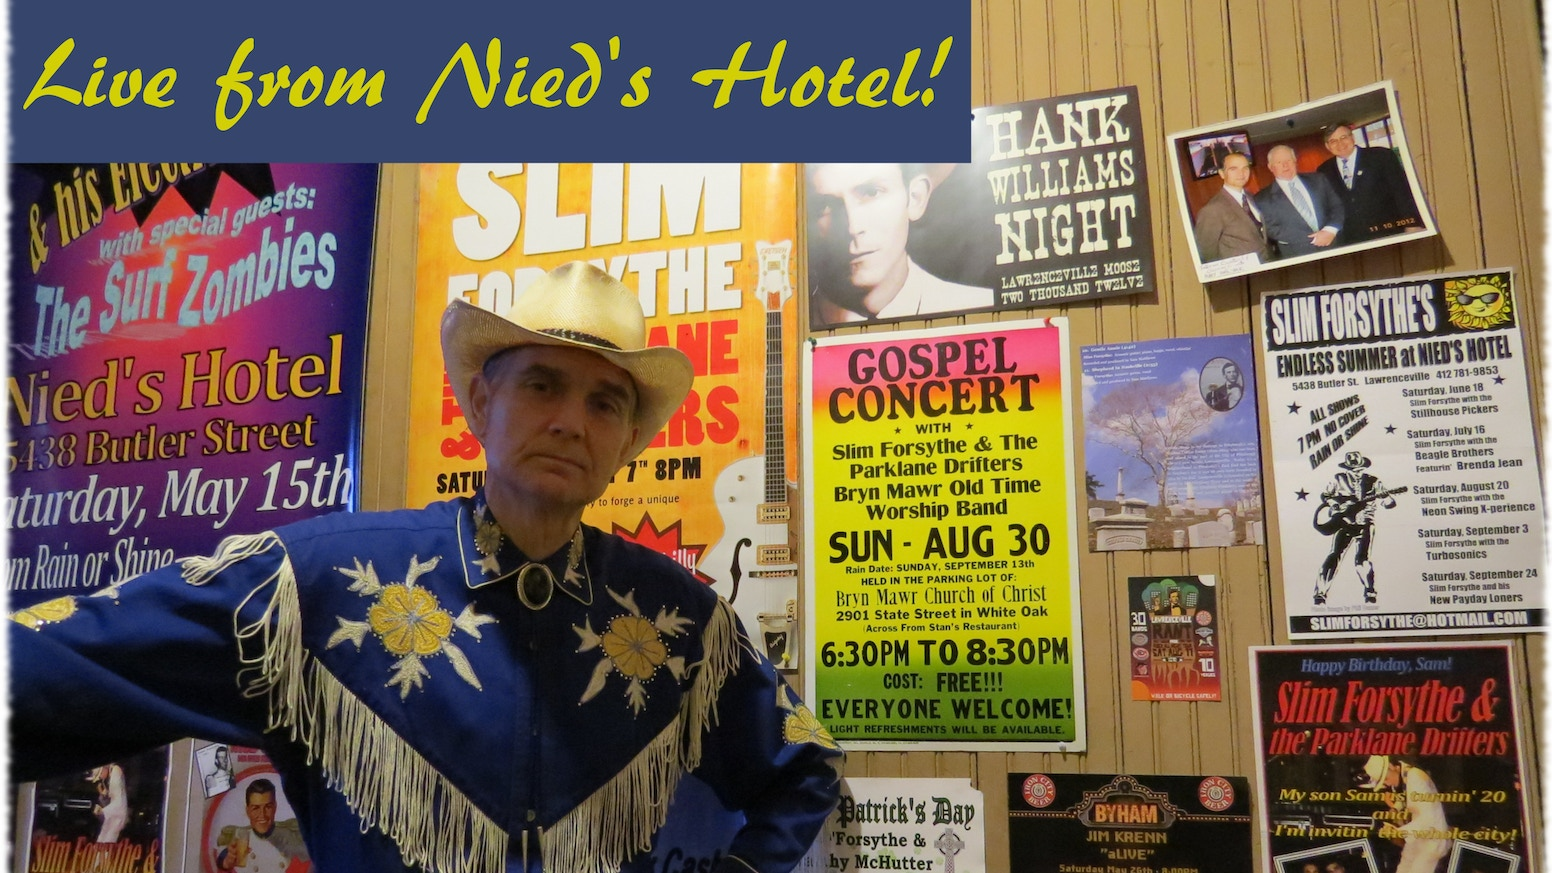 Country Music TV Show: LIVE FROM NIED'S HOTEL! by Slim